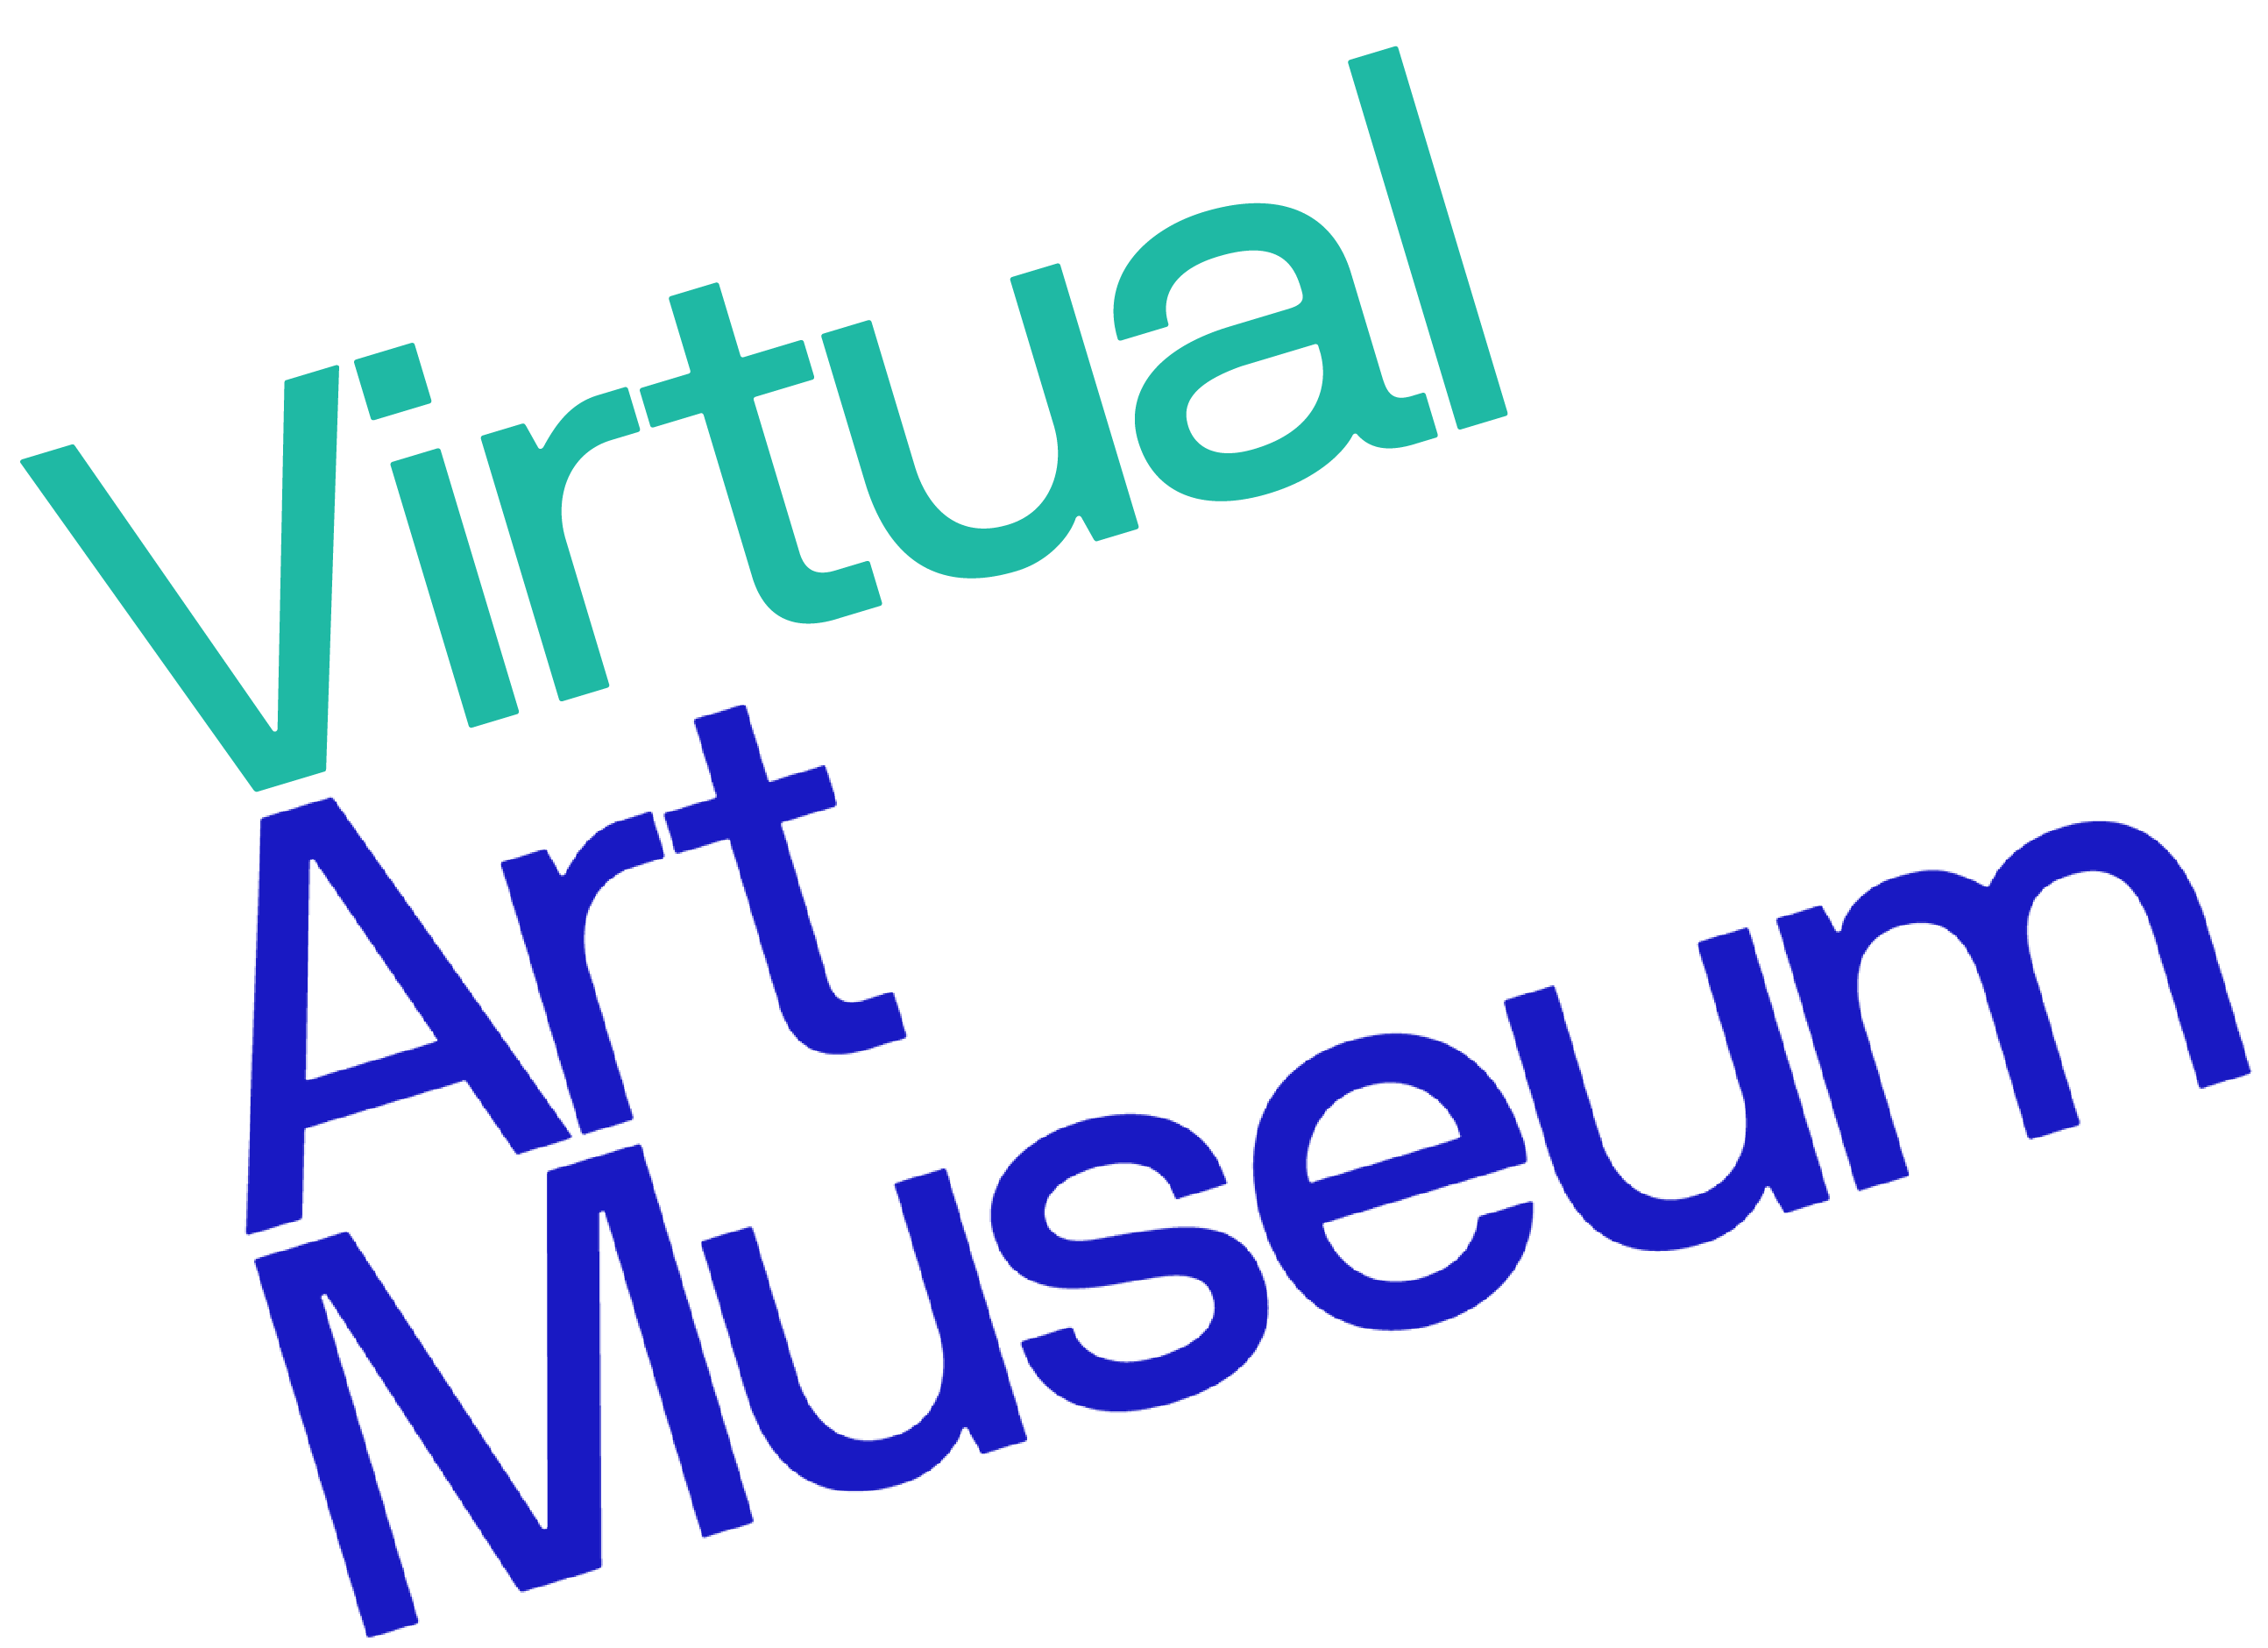 Virtual art museum logo in teal and blue